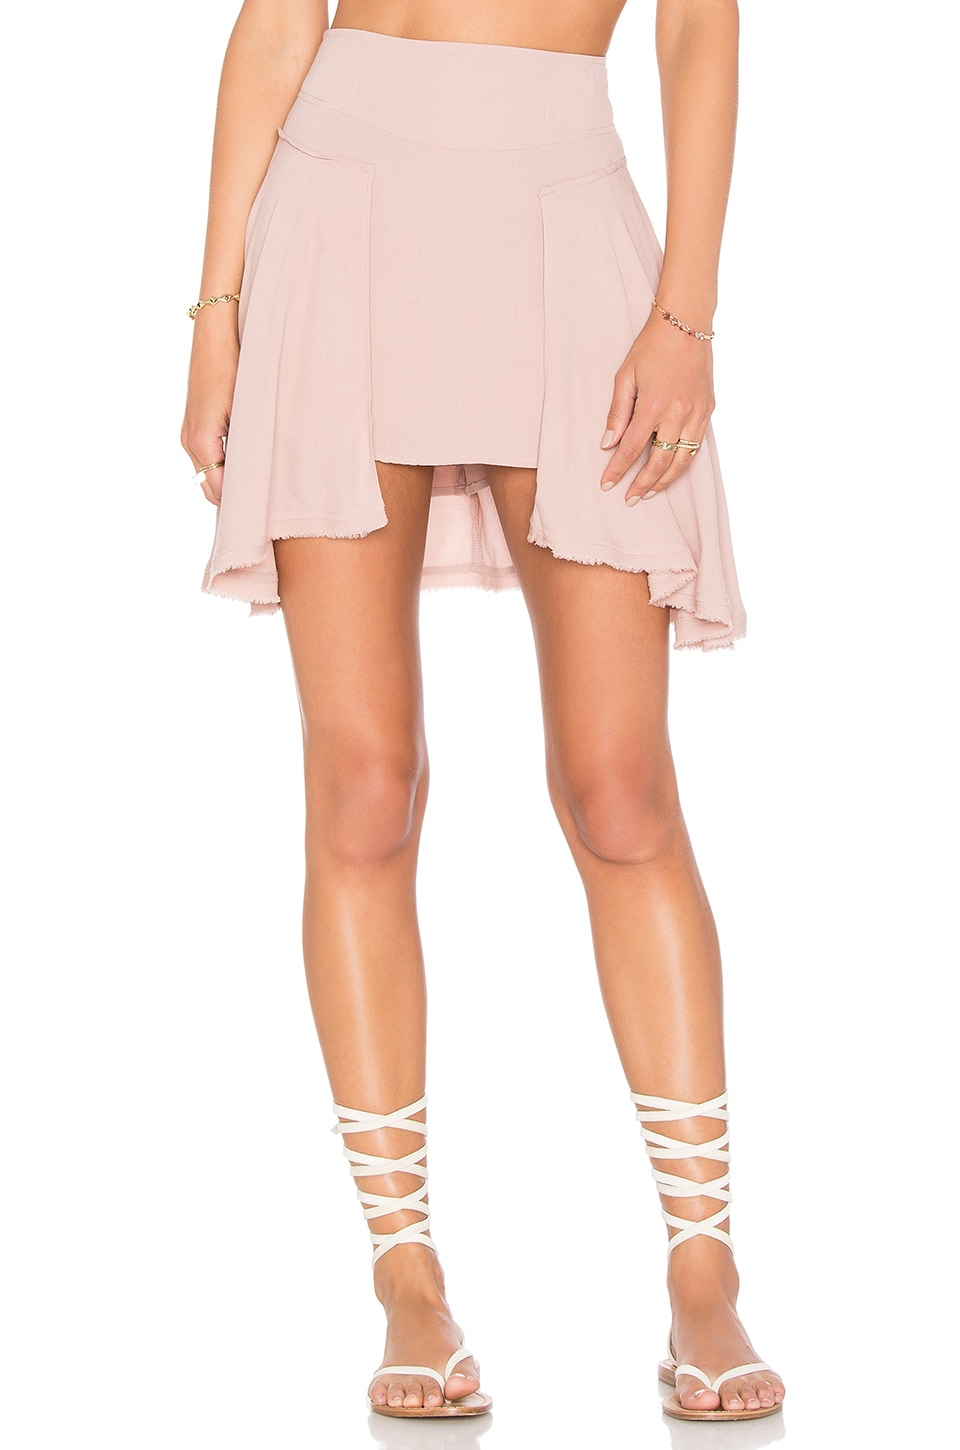 Free People New York Skirt in Pink